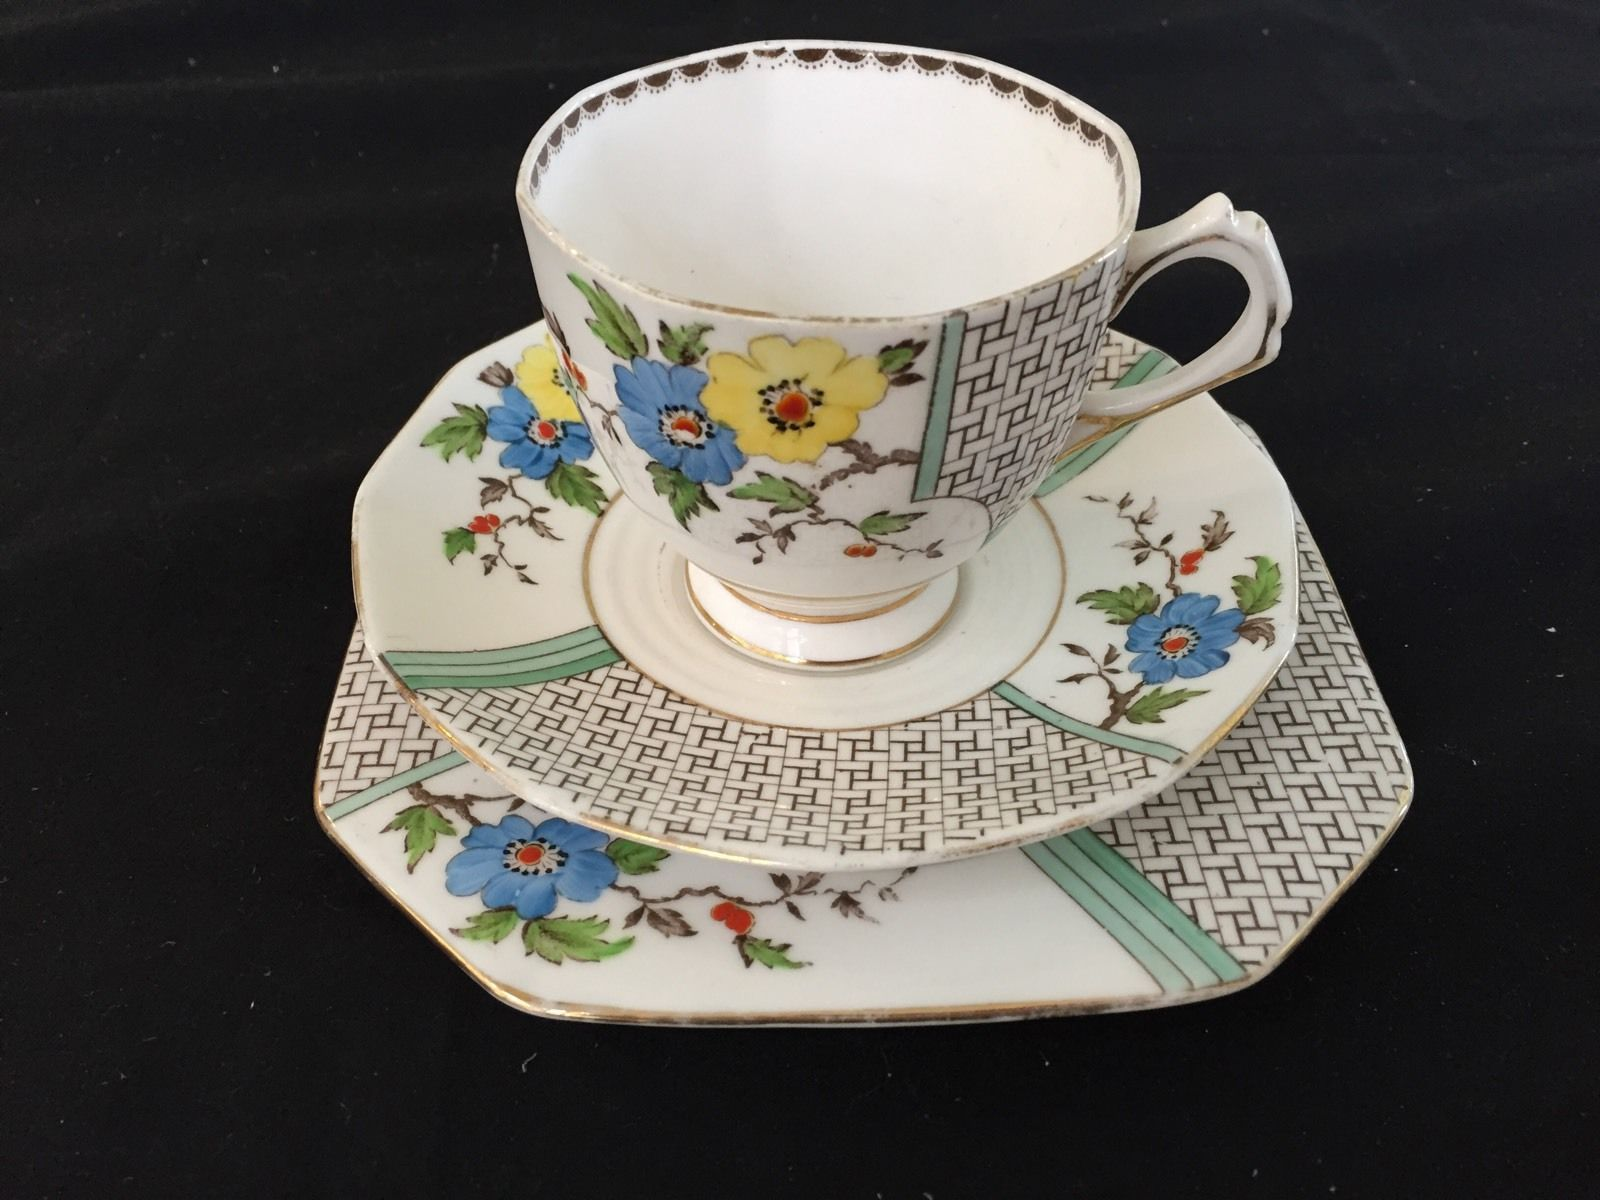 Tuscan 'Plant' China England Trio CUP Saucer Side Plate VG Cond | eBay